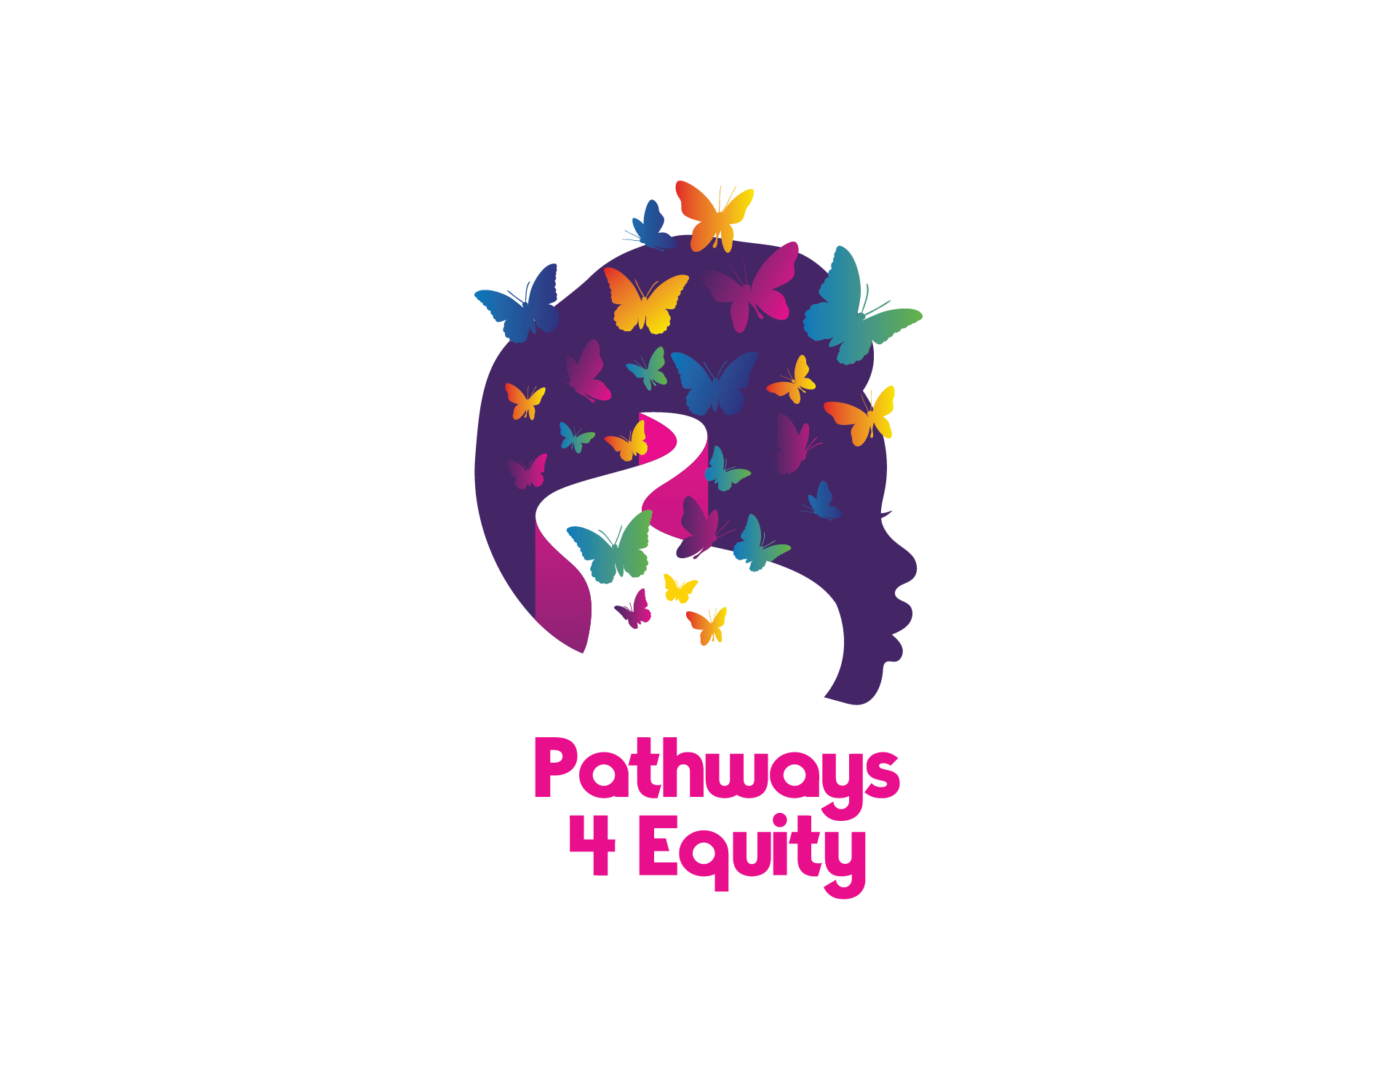 https://thelohm.org/wp-content/uploads/2020/03/Pathways4Equity-Logo-Konsus-HighRes.png